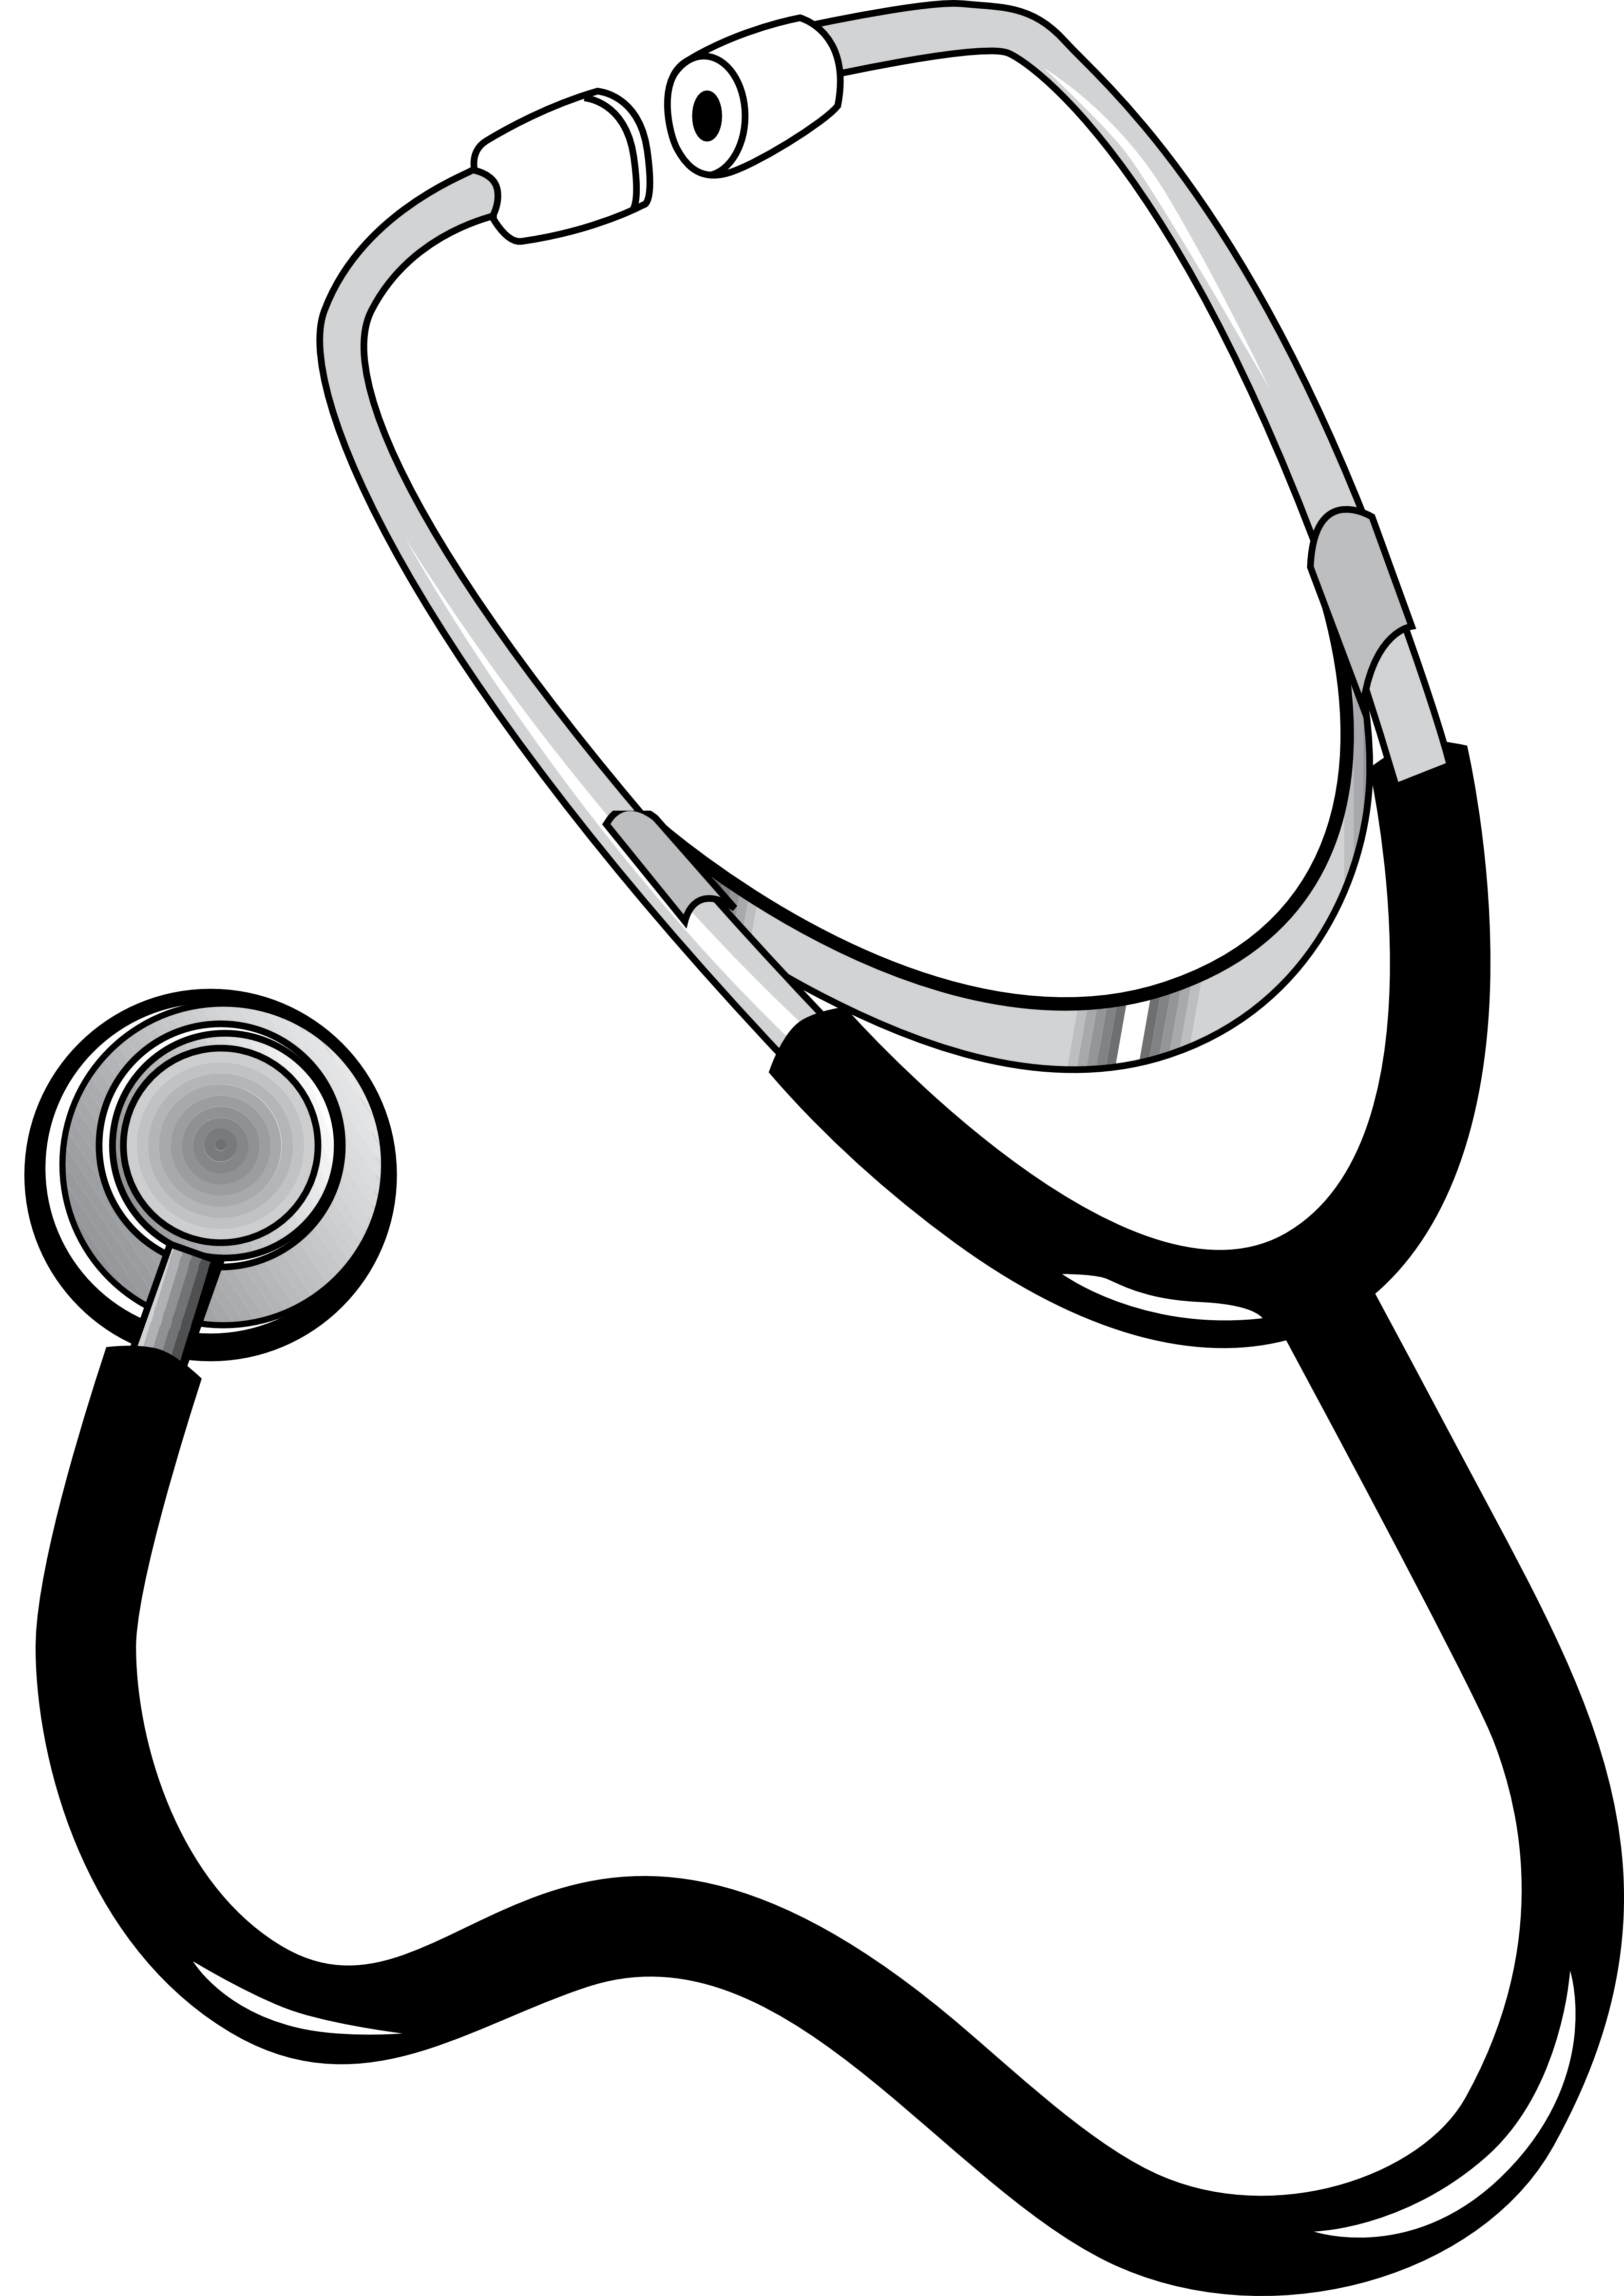 Stethoscope pictures free clipart clipart transparent stock Free Picture Of Stethoscope, Download Free Clip Art, Free ... clipart transparent stock